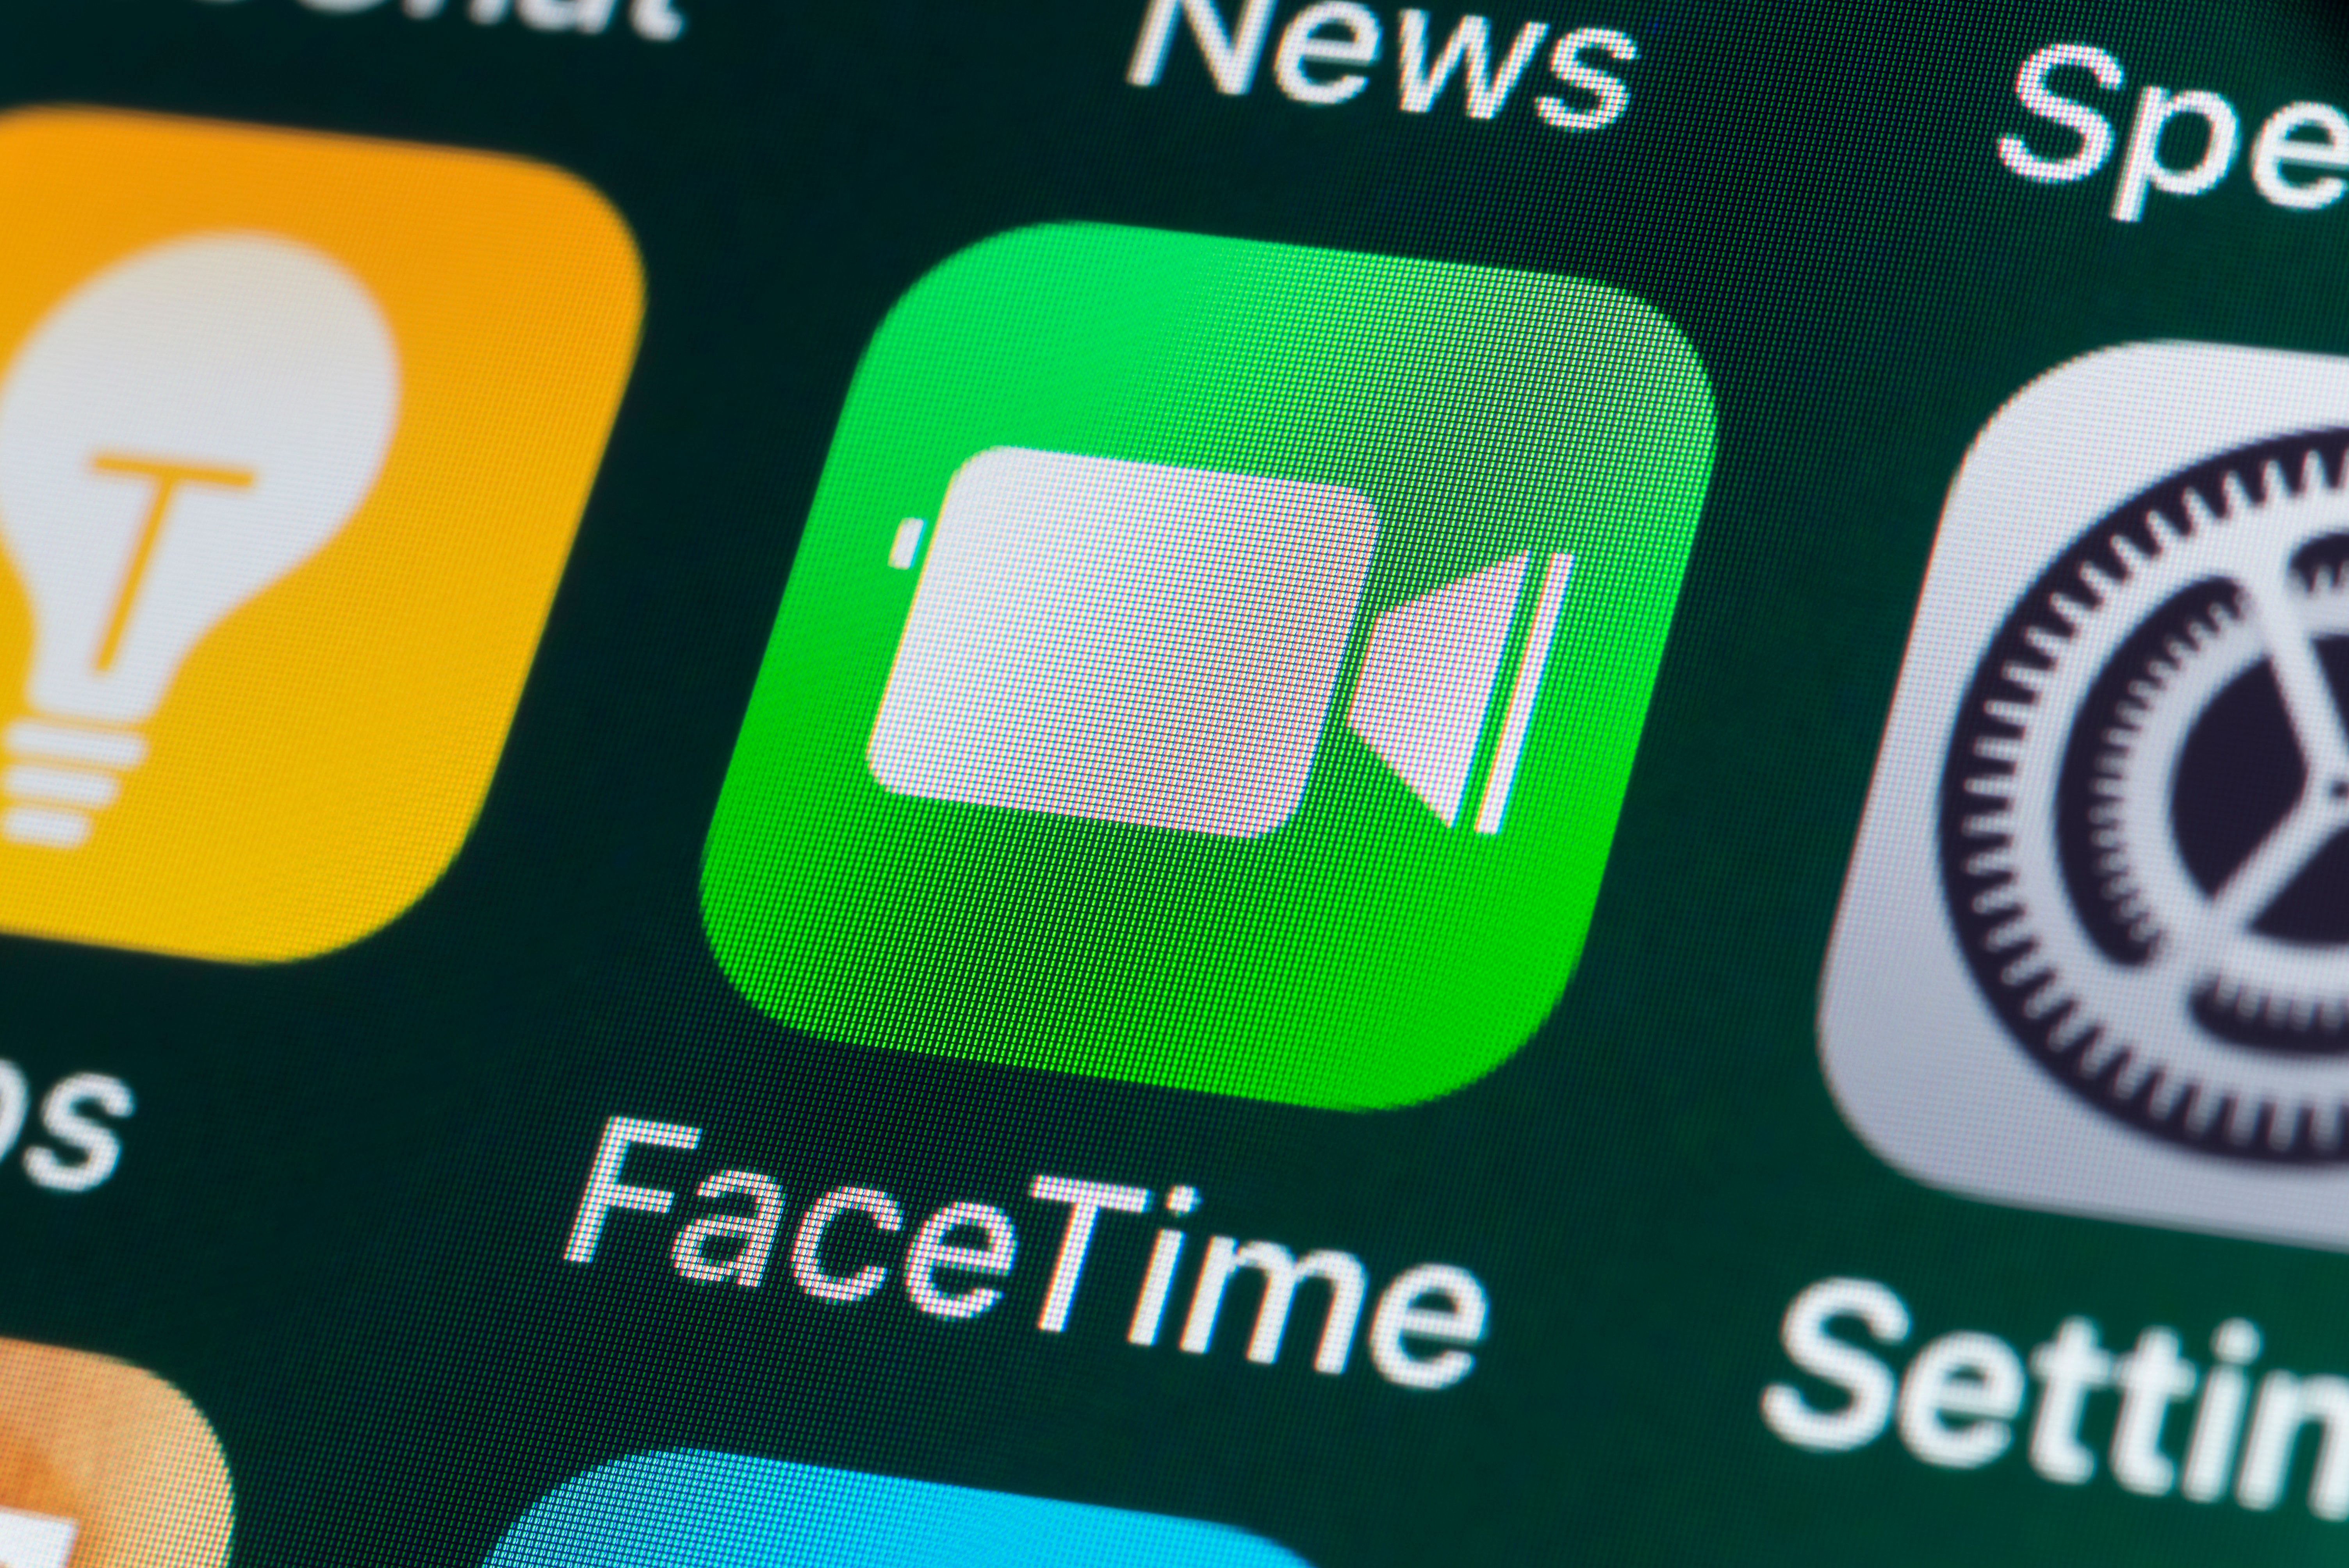 Apple Patches FaceTime Vulnerability in iOS, macOS Updates